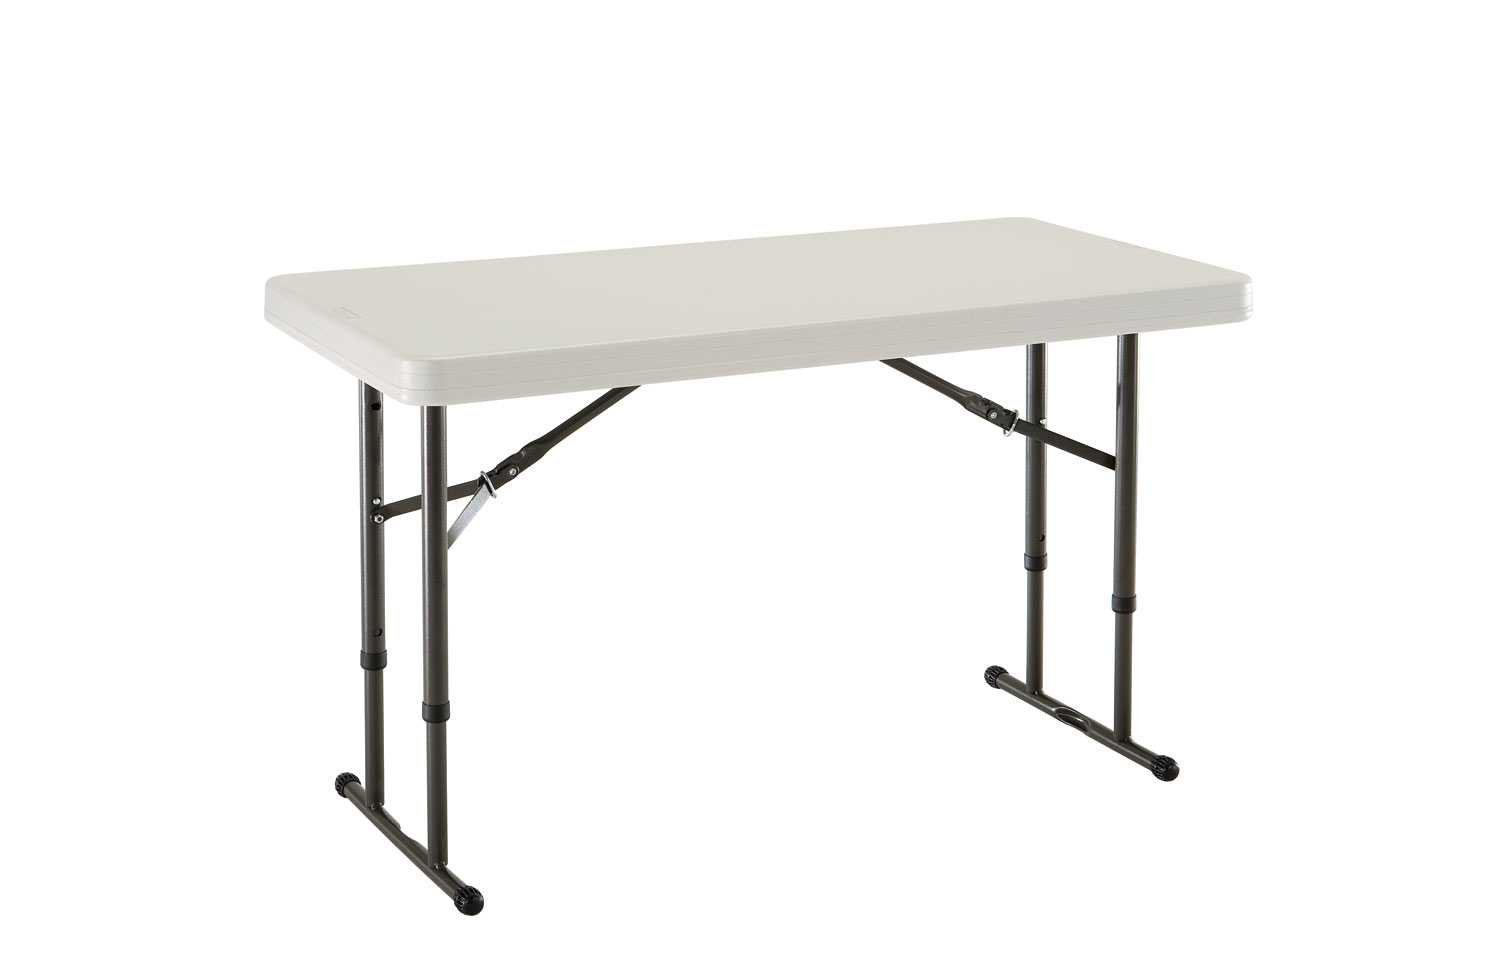 4 foot adjustable height folding table - Amazon Com Lifetime 80161 4 Foot Commercial Adjustable Height Folding Table Almond Tabletop With Bronze Frame Kitchen Dining